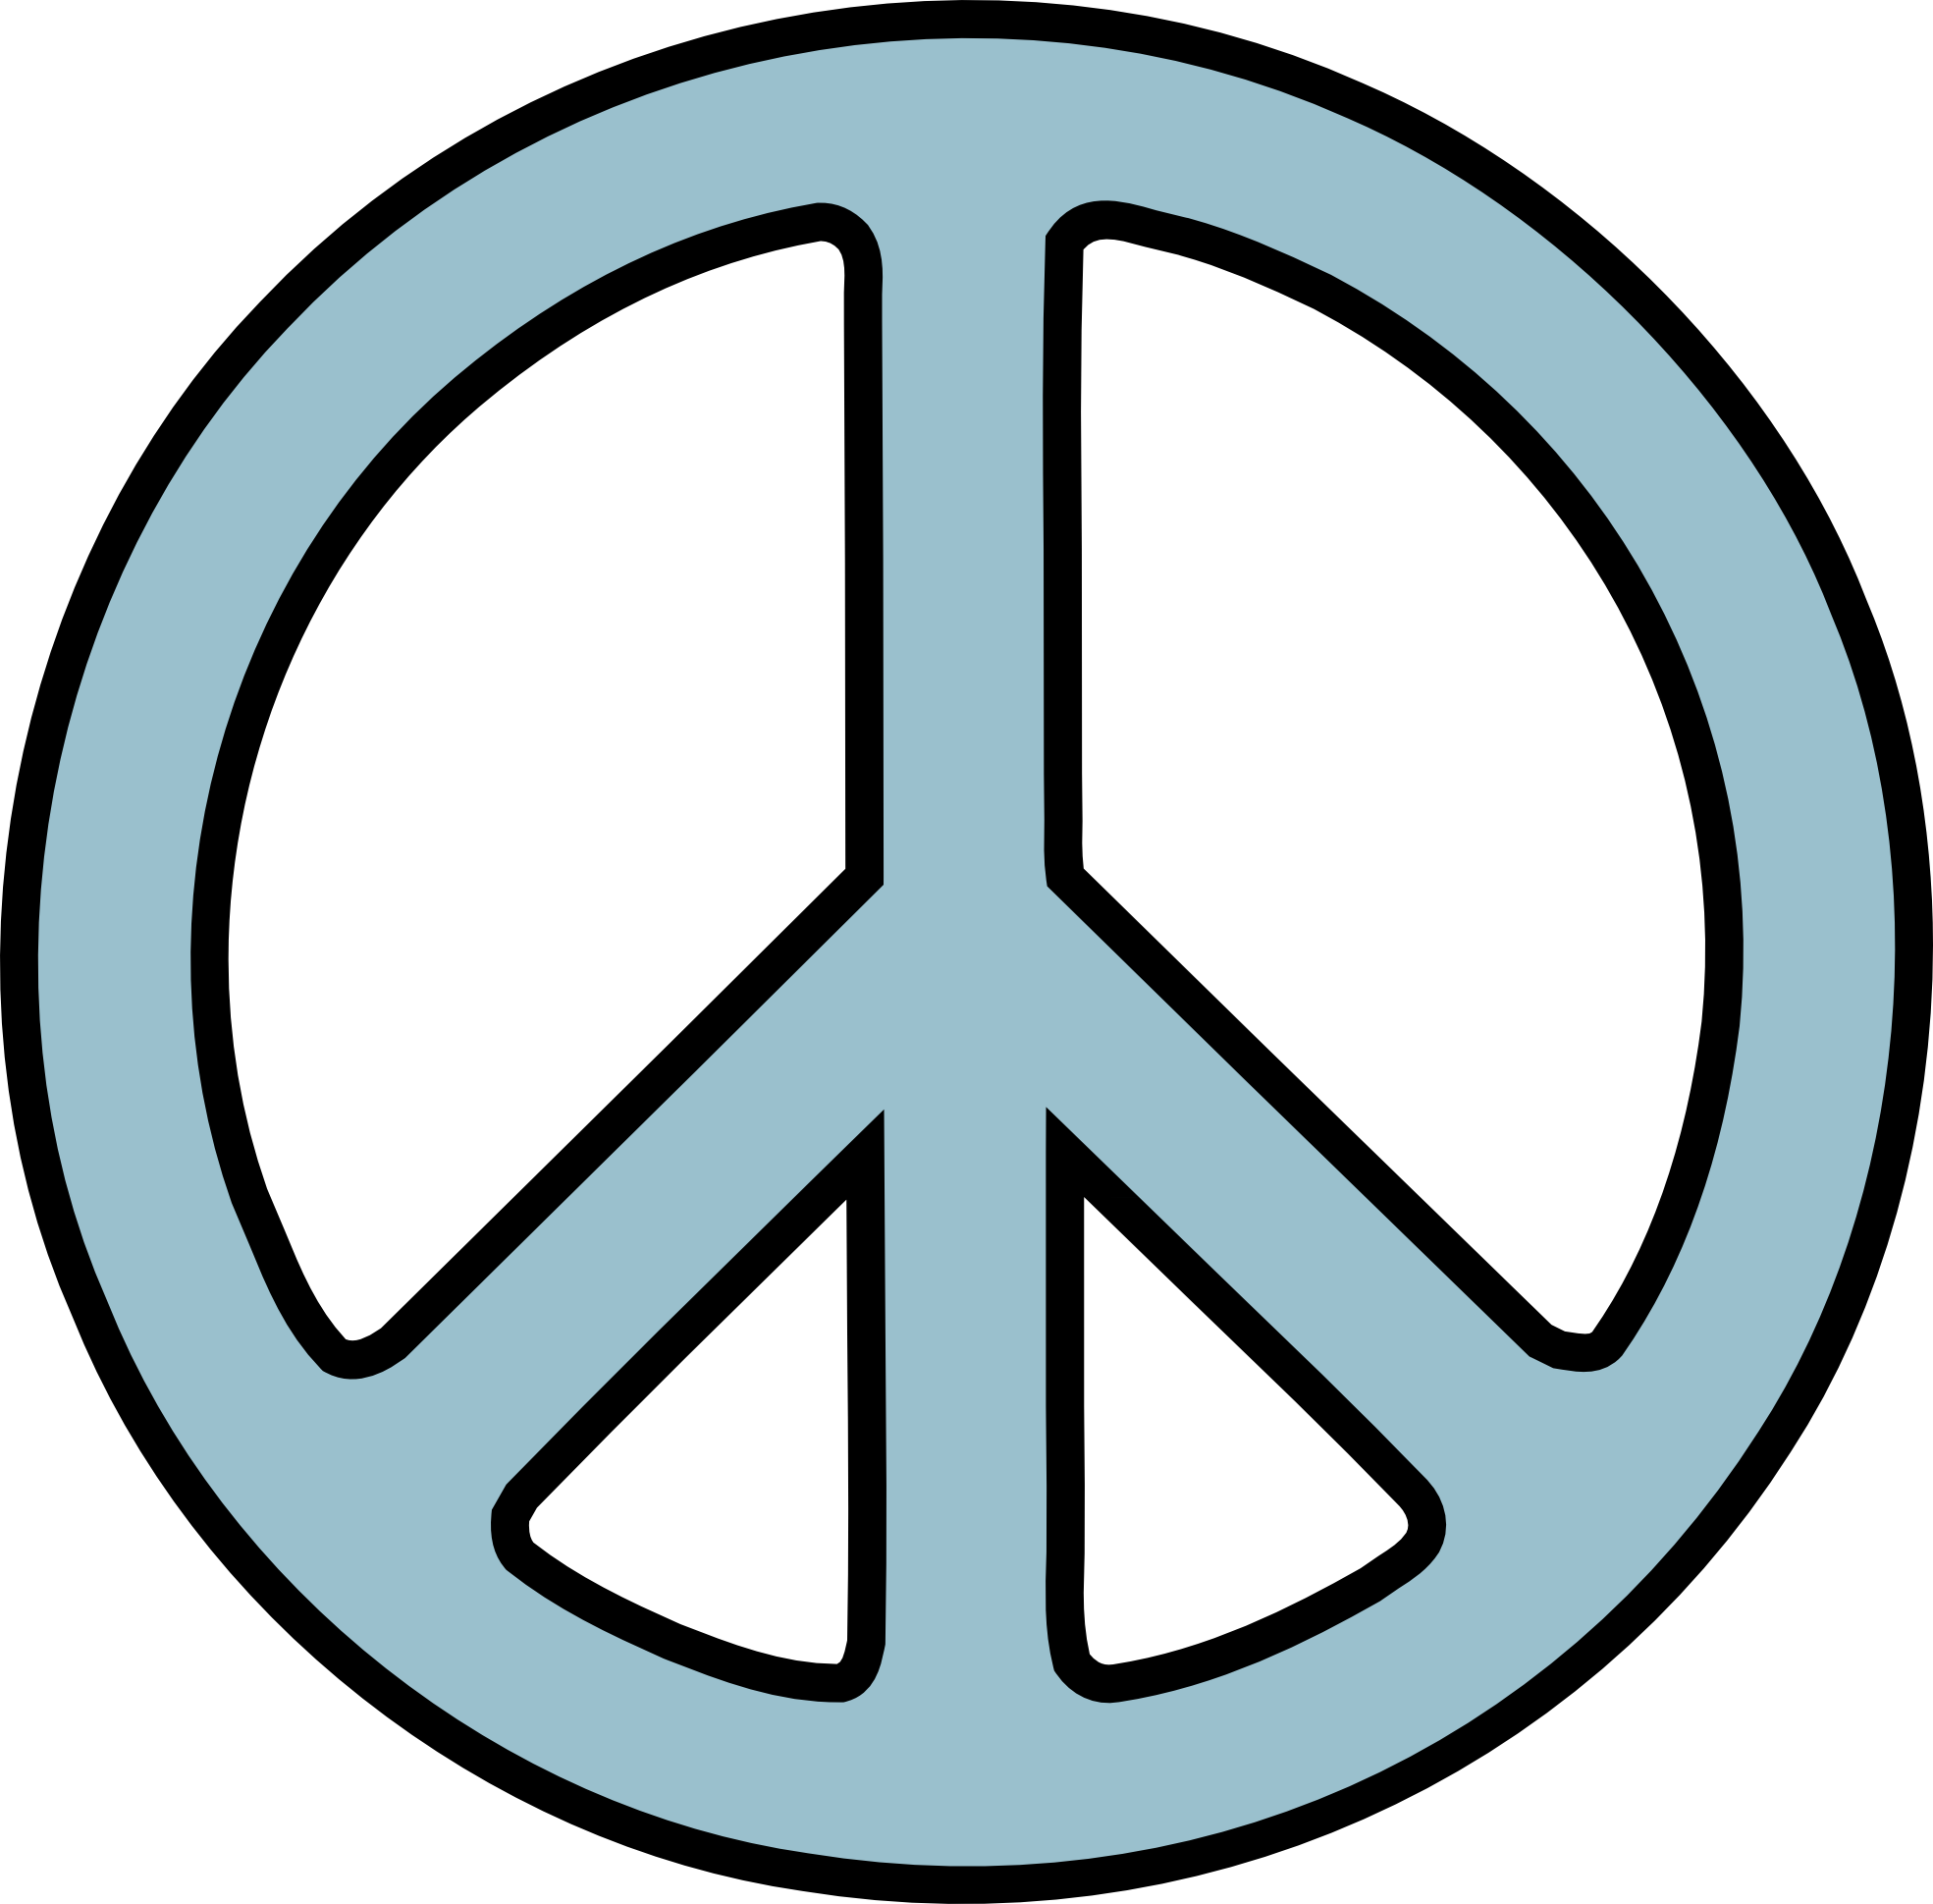 Peace sign clip art free clipart images 2